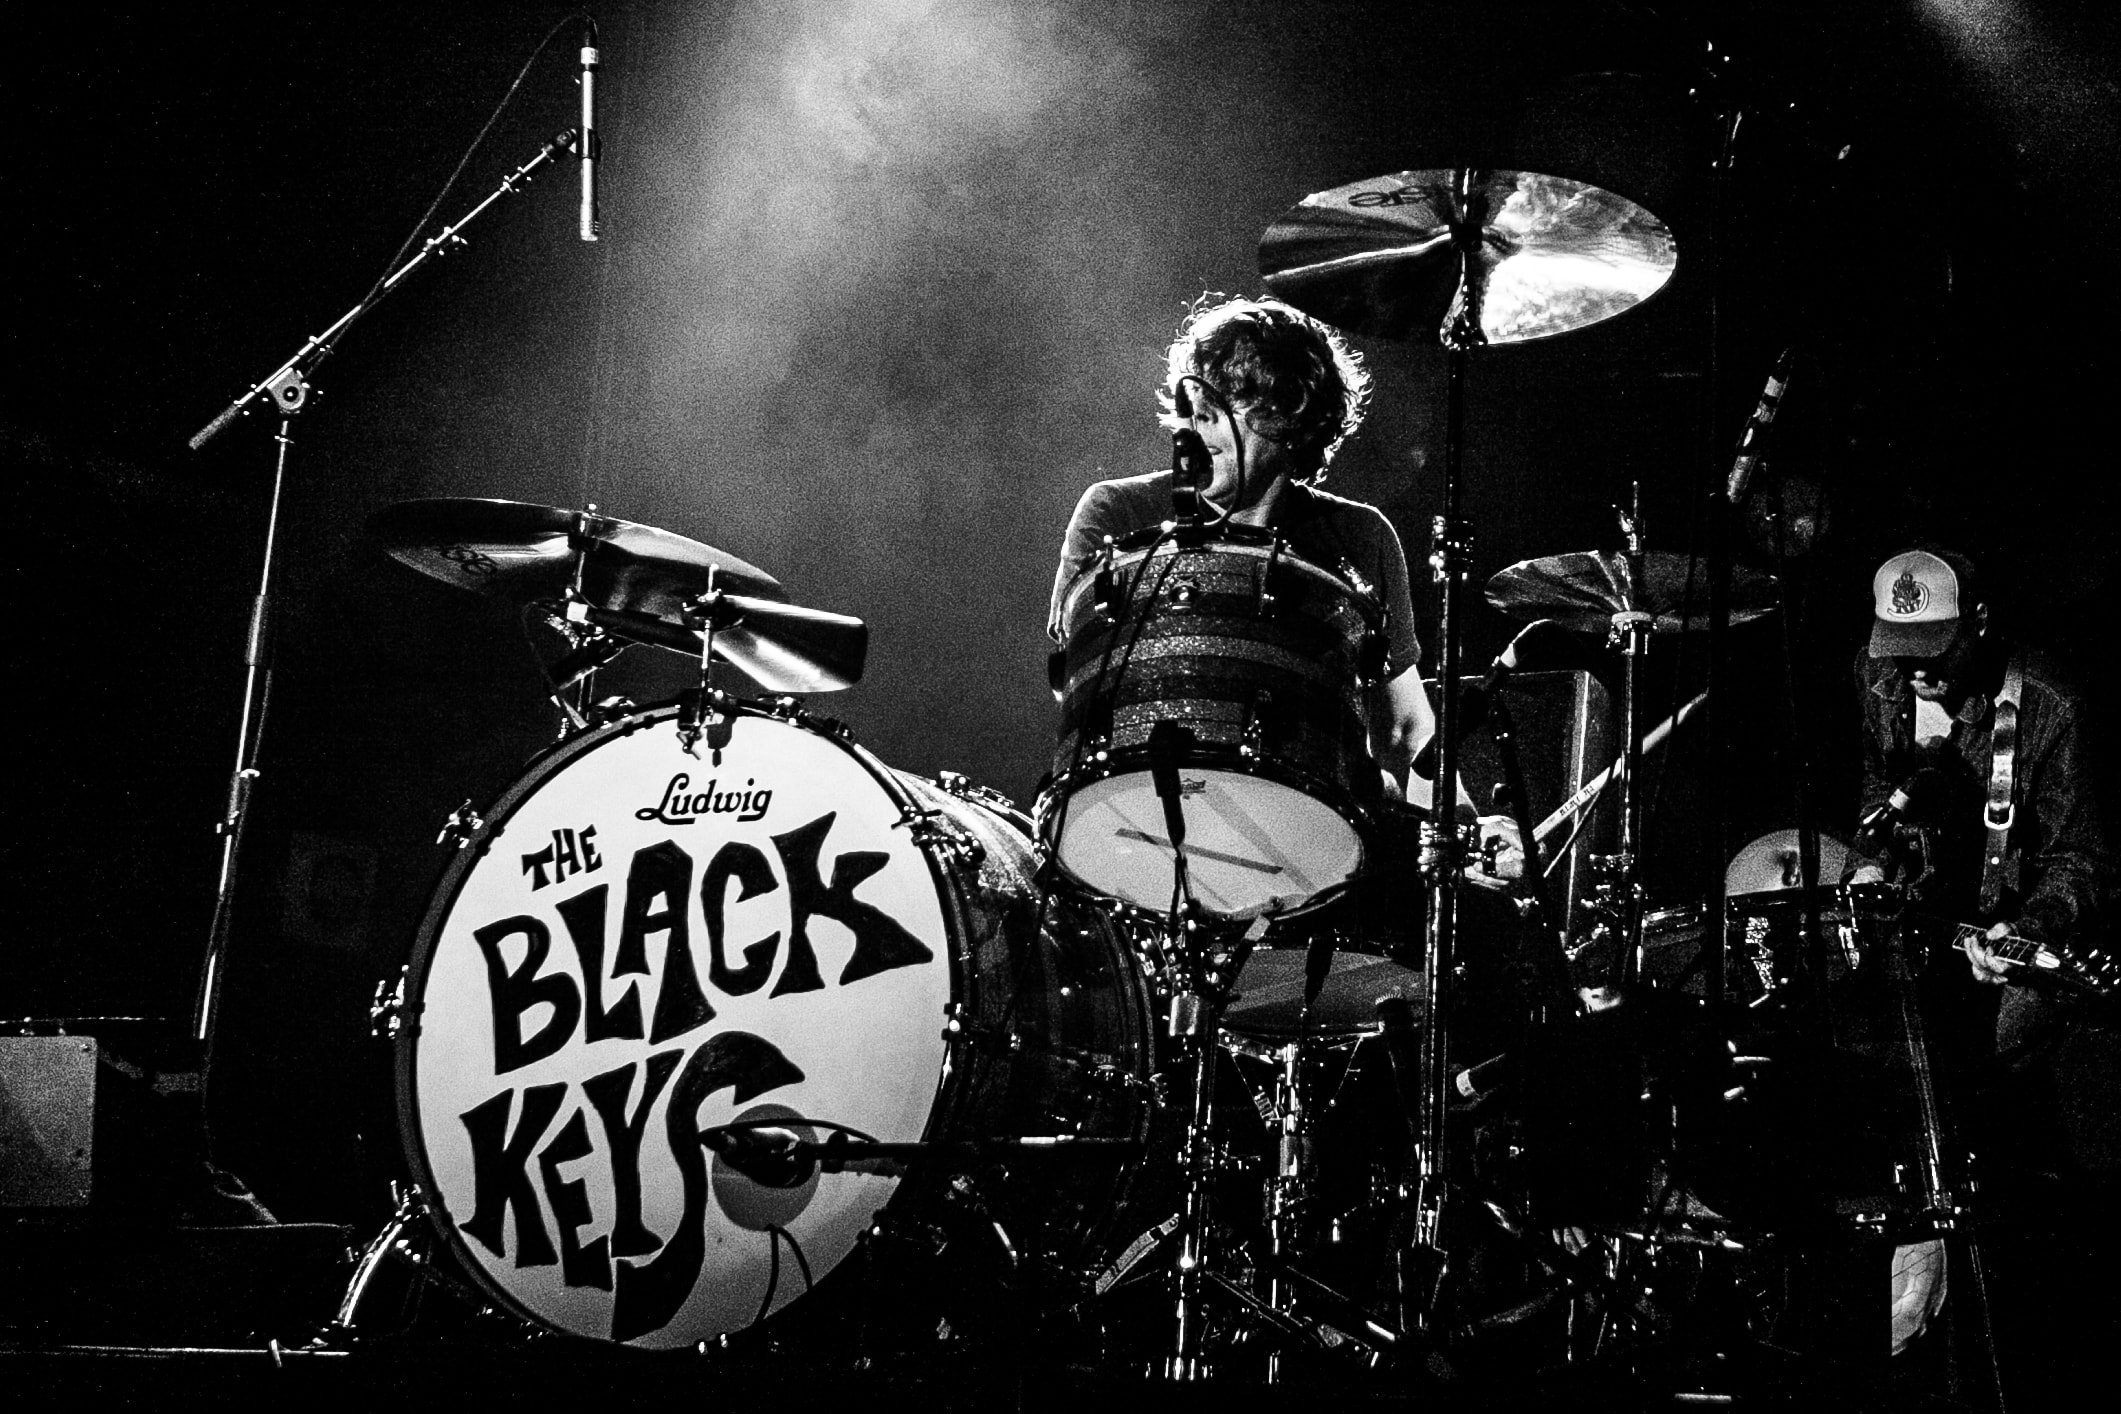 The Black Keys Desktop wallpaper